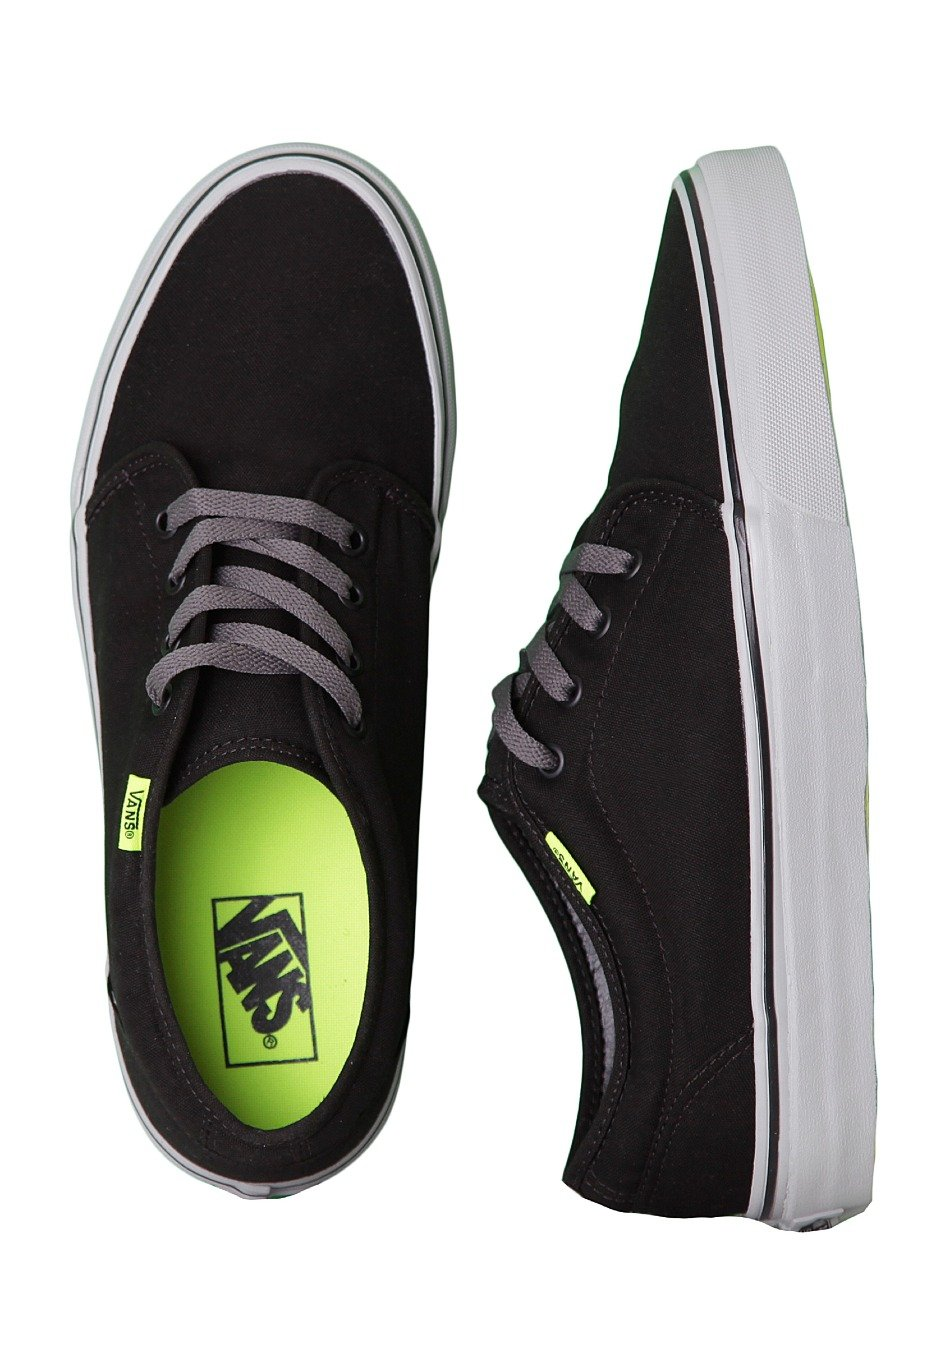 a2089c1dbb Vans - 106 Vulcanized Black Charcoal Neon Yellow - Shoes - Impericon.com  Worldwide